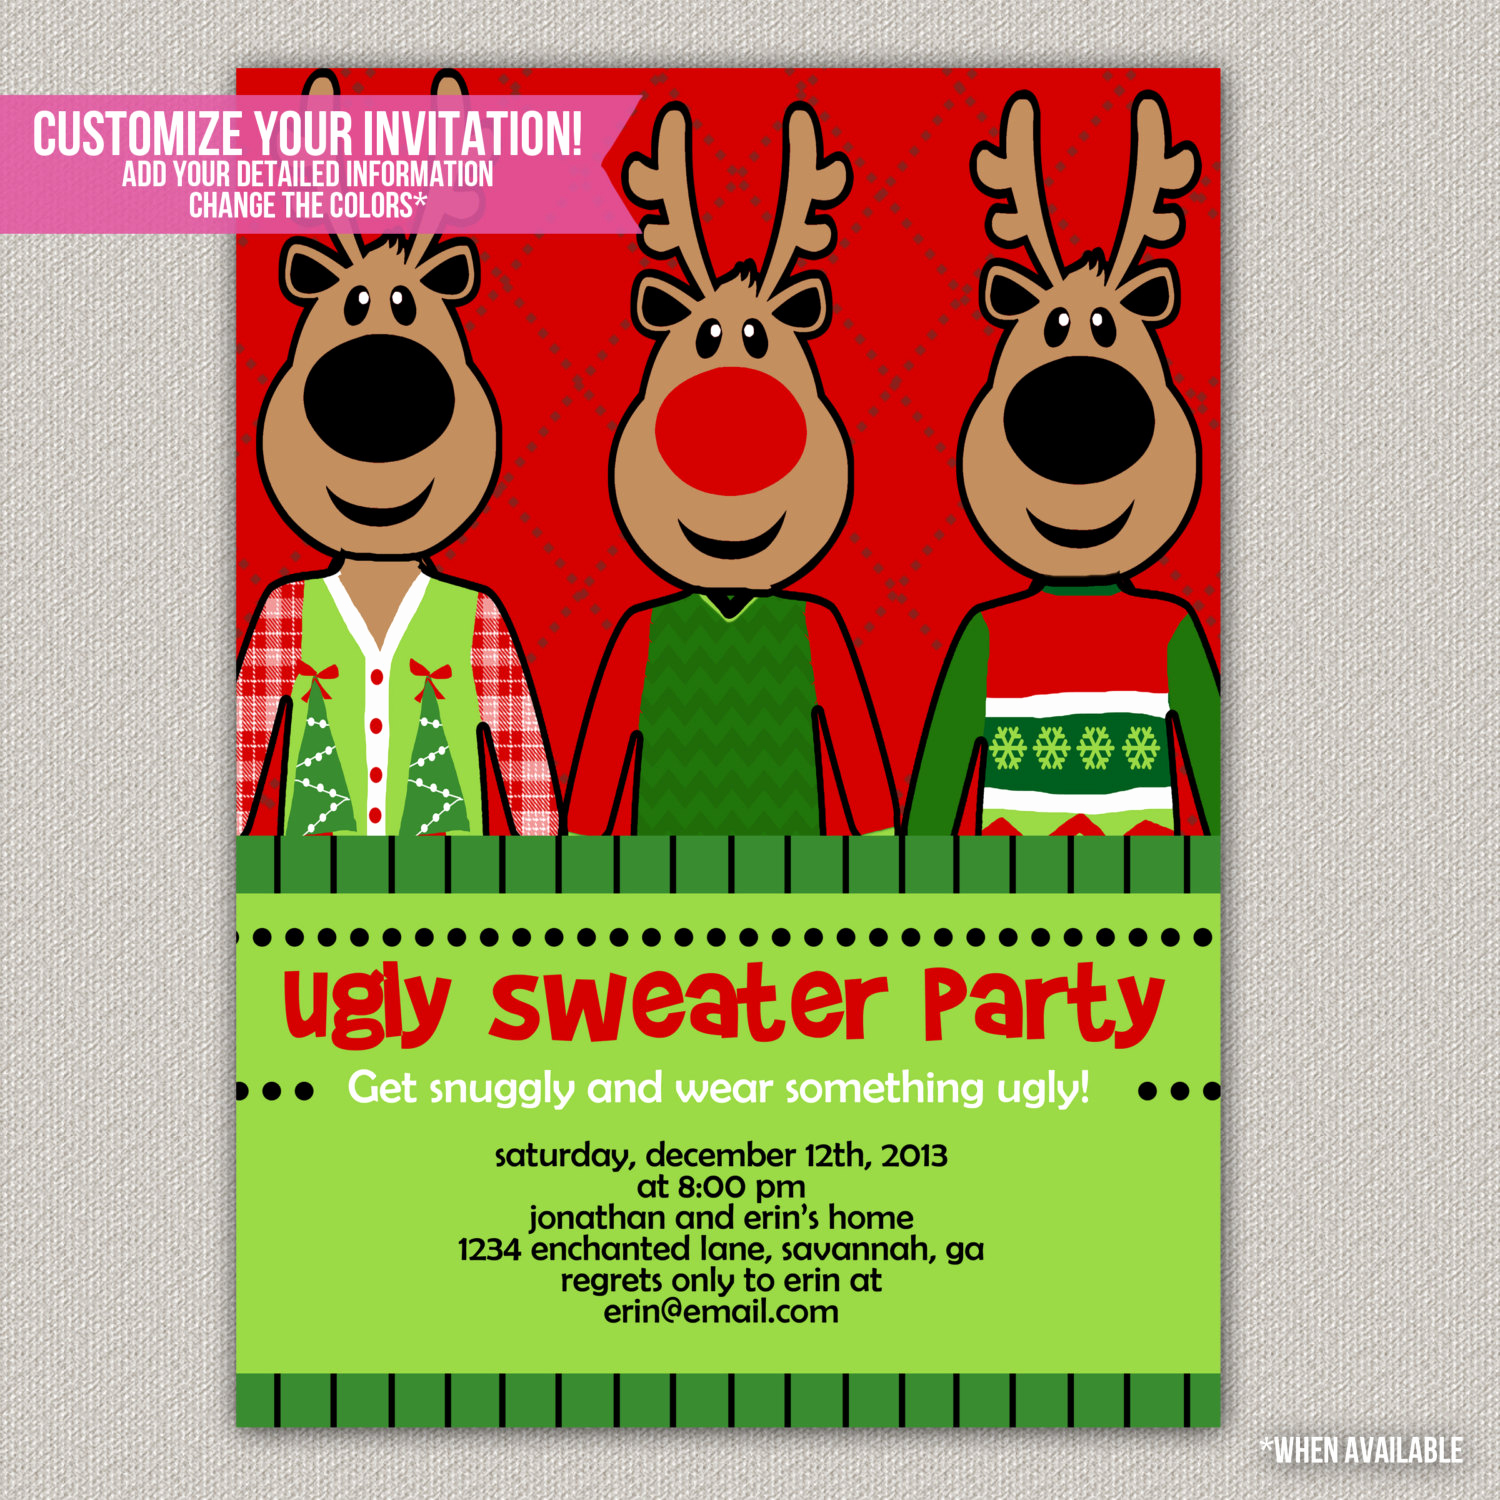 Ugly Christmas Party Invitation Luxury Ugly Sweater Party Tacky Sweater Christmas by